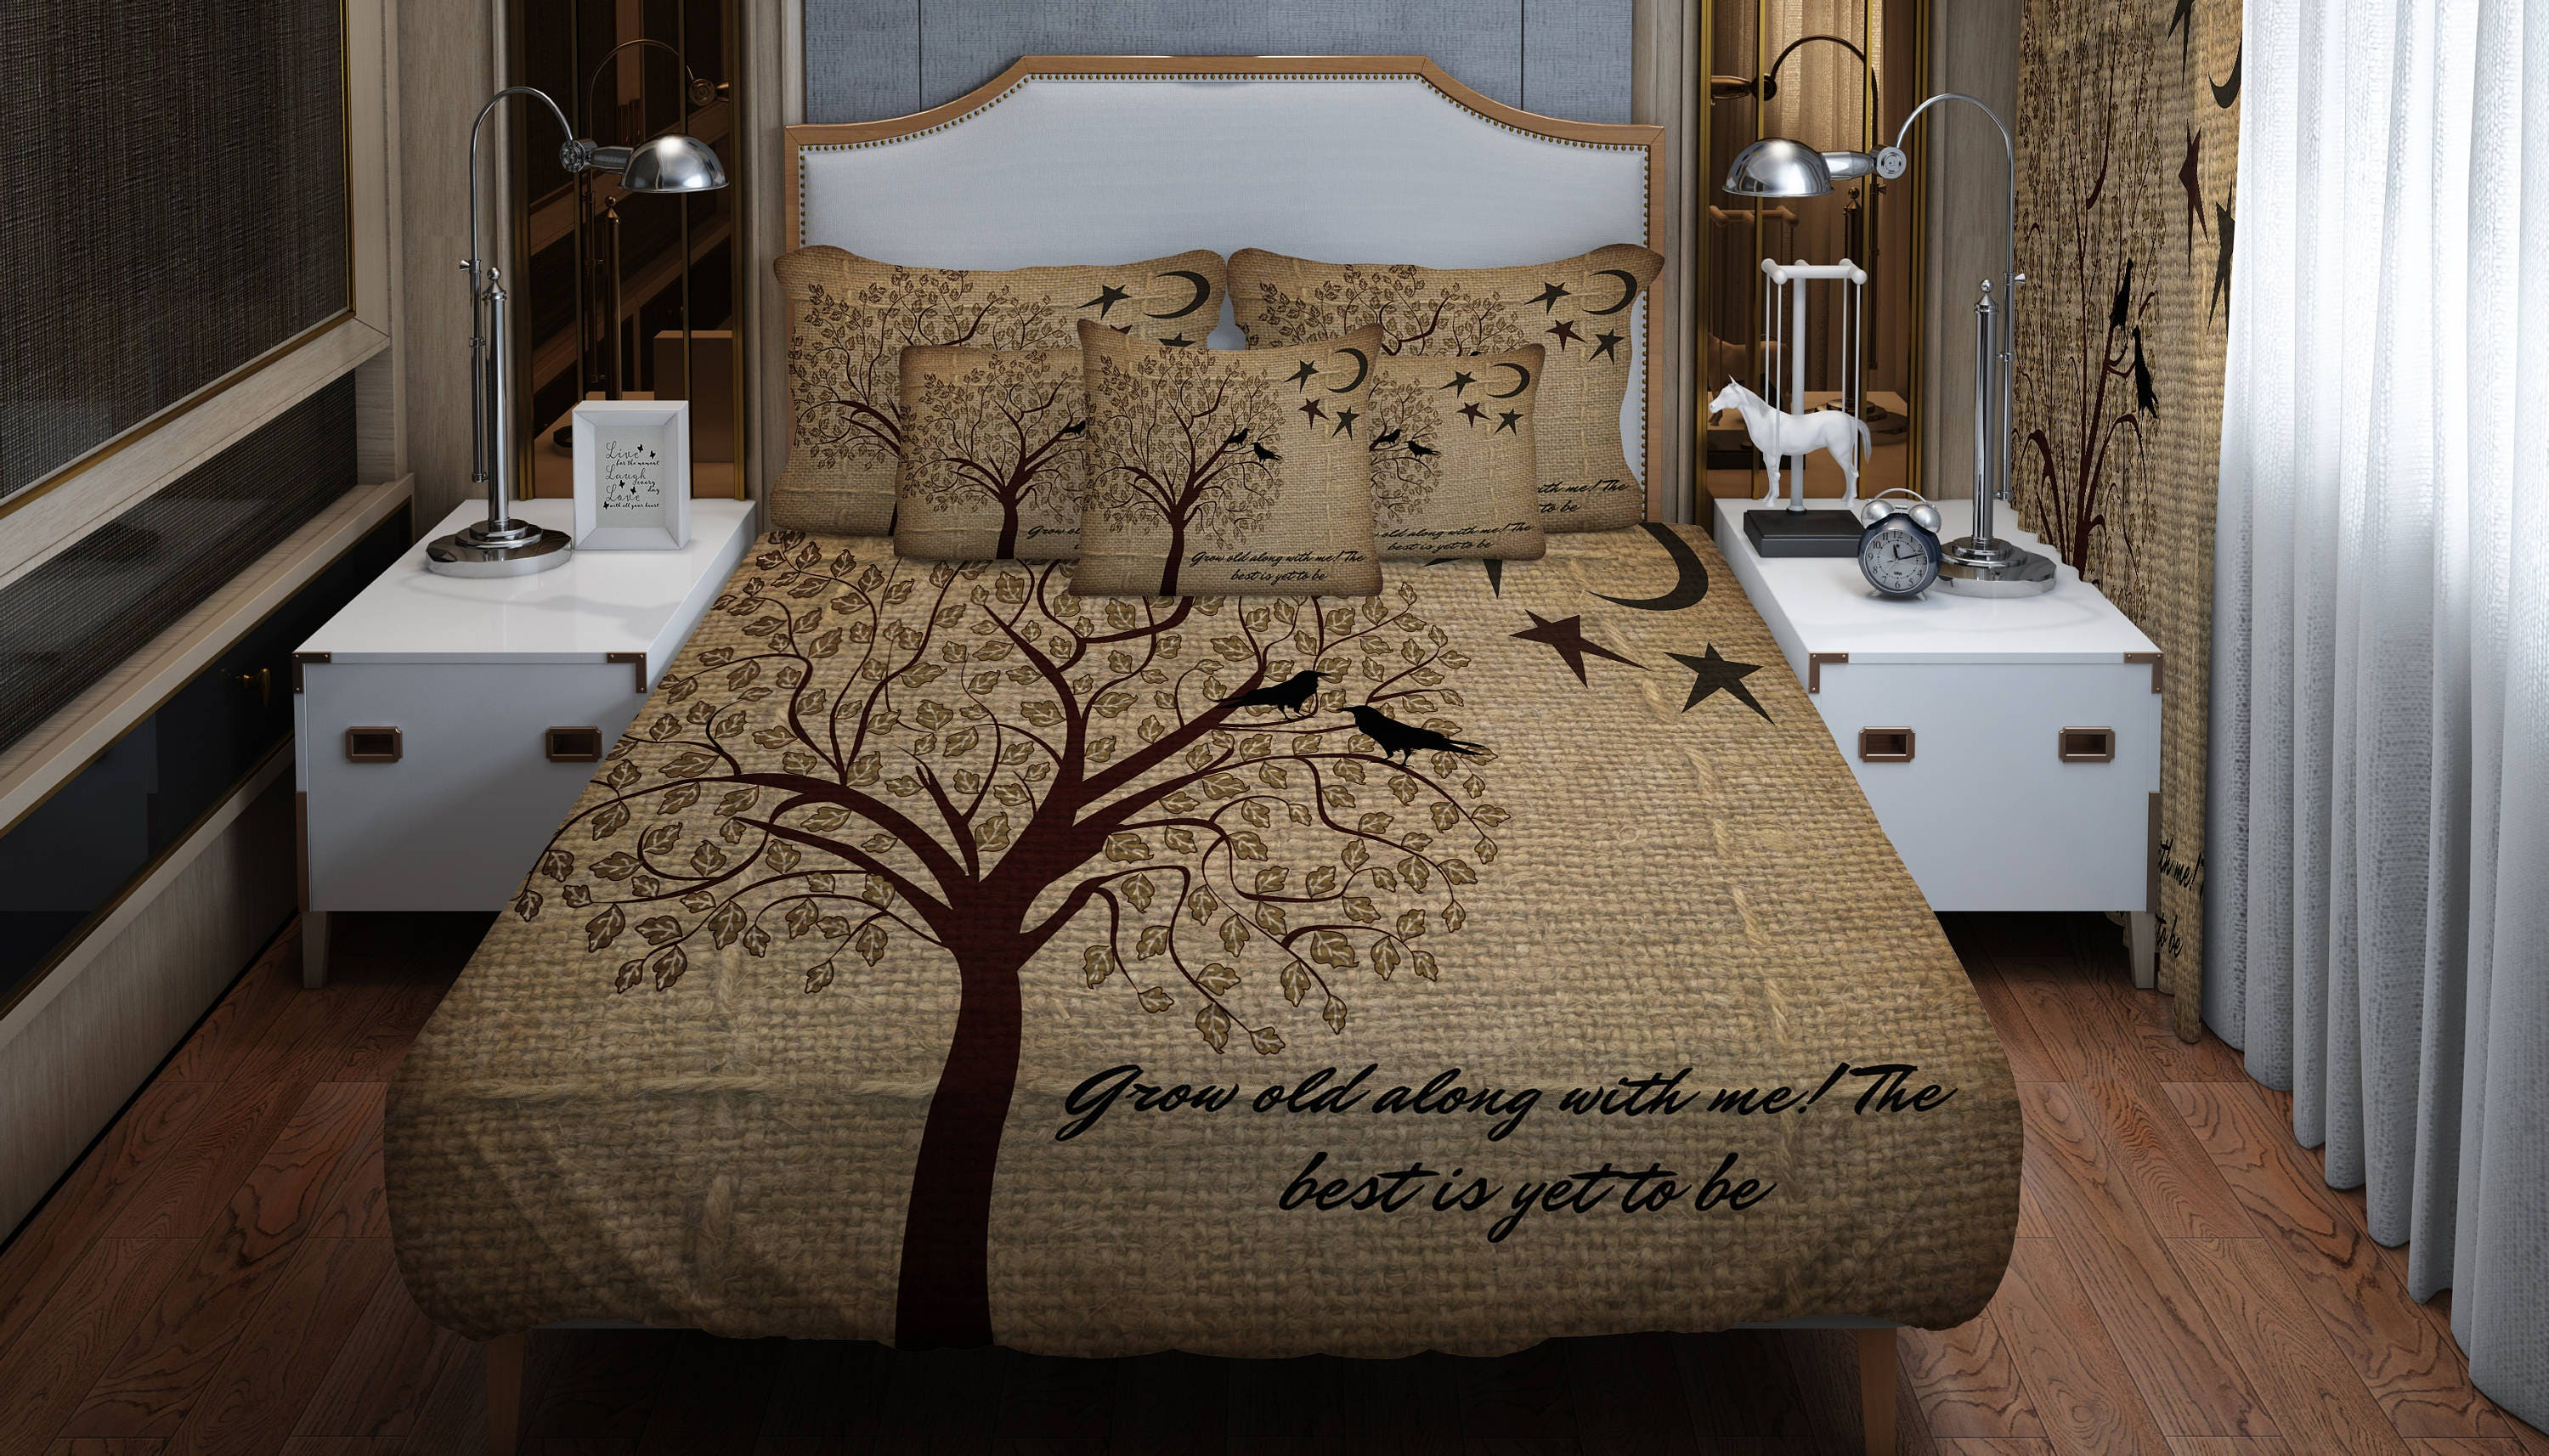 chic duvet faux home bedding them sets have radiance and you comforter will rustic textiles shirred why covers silk